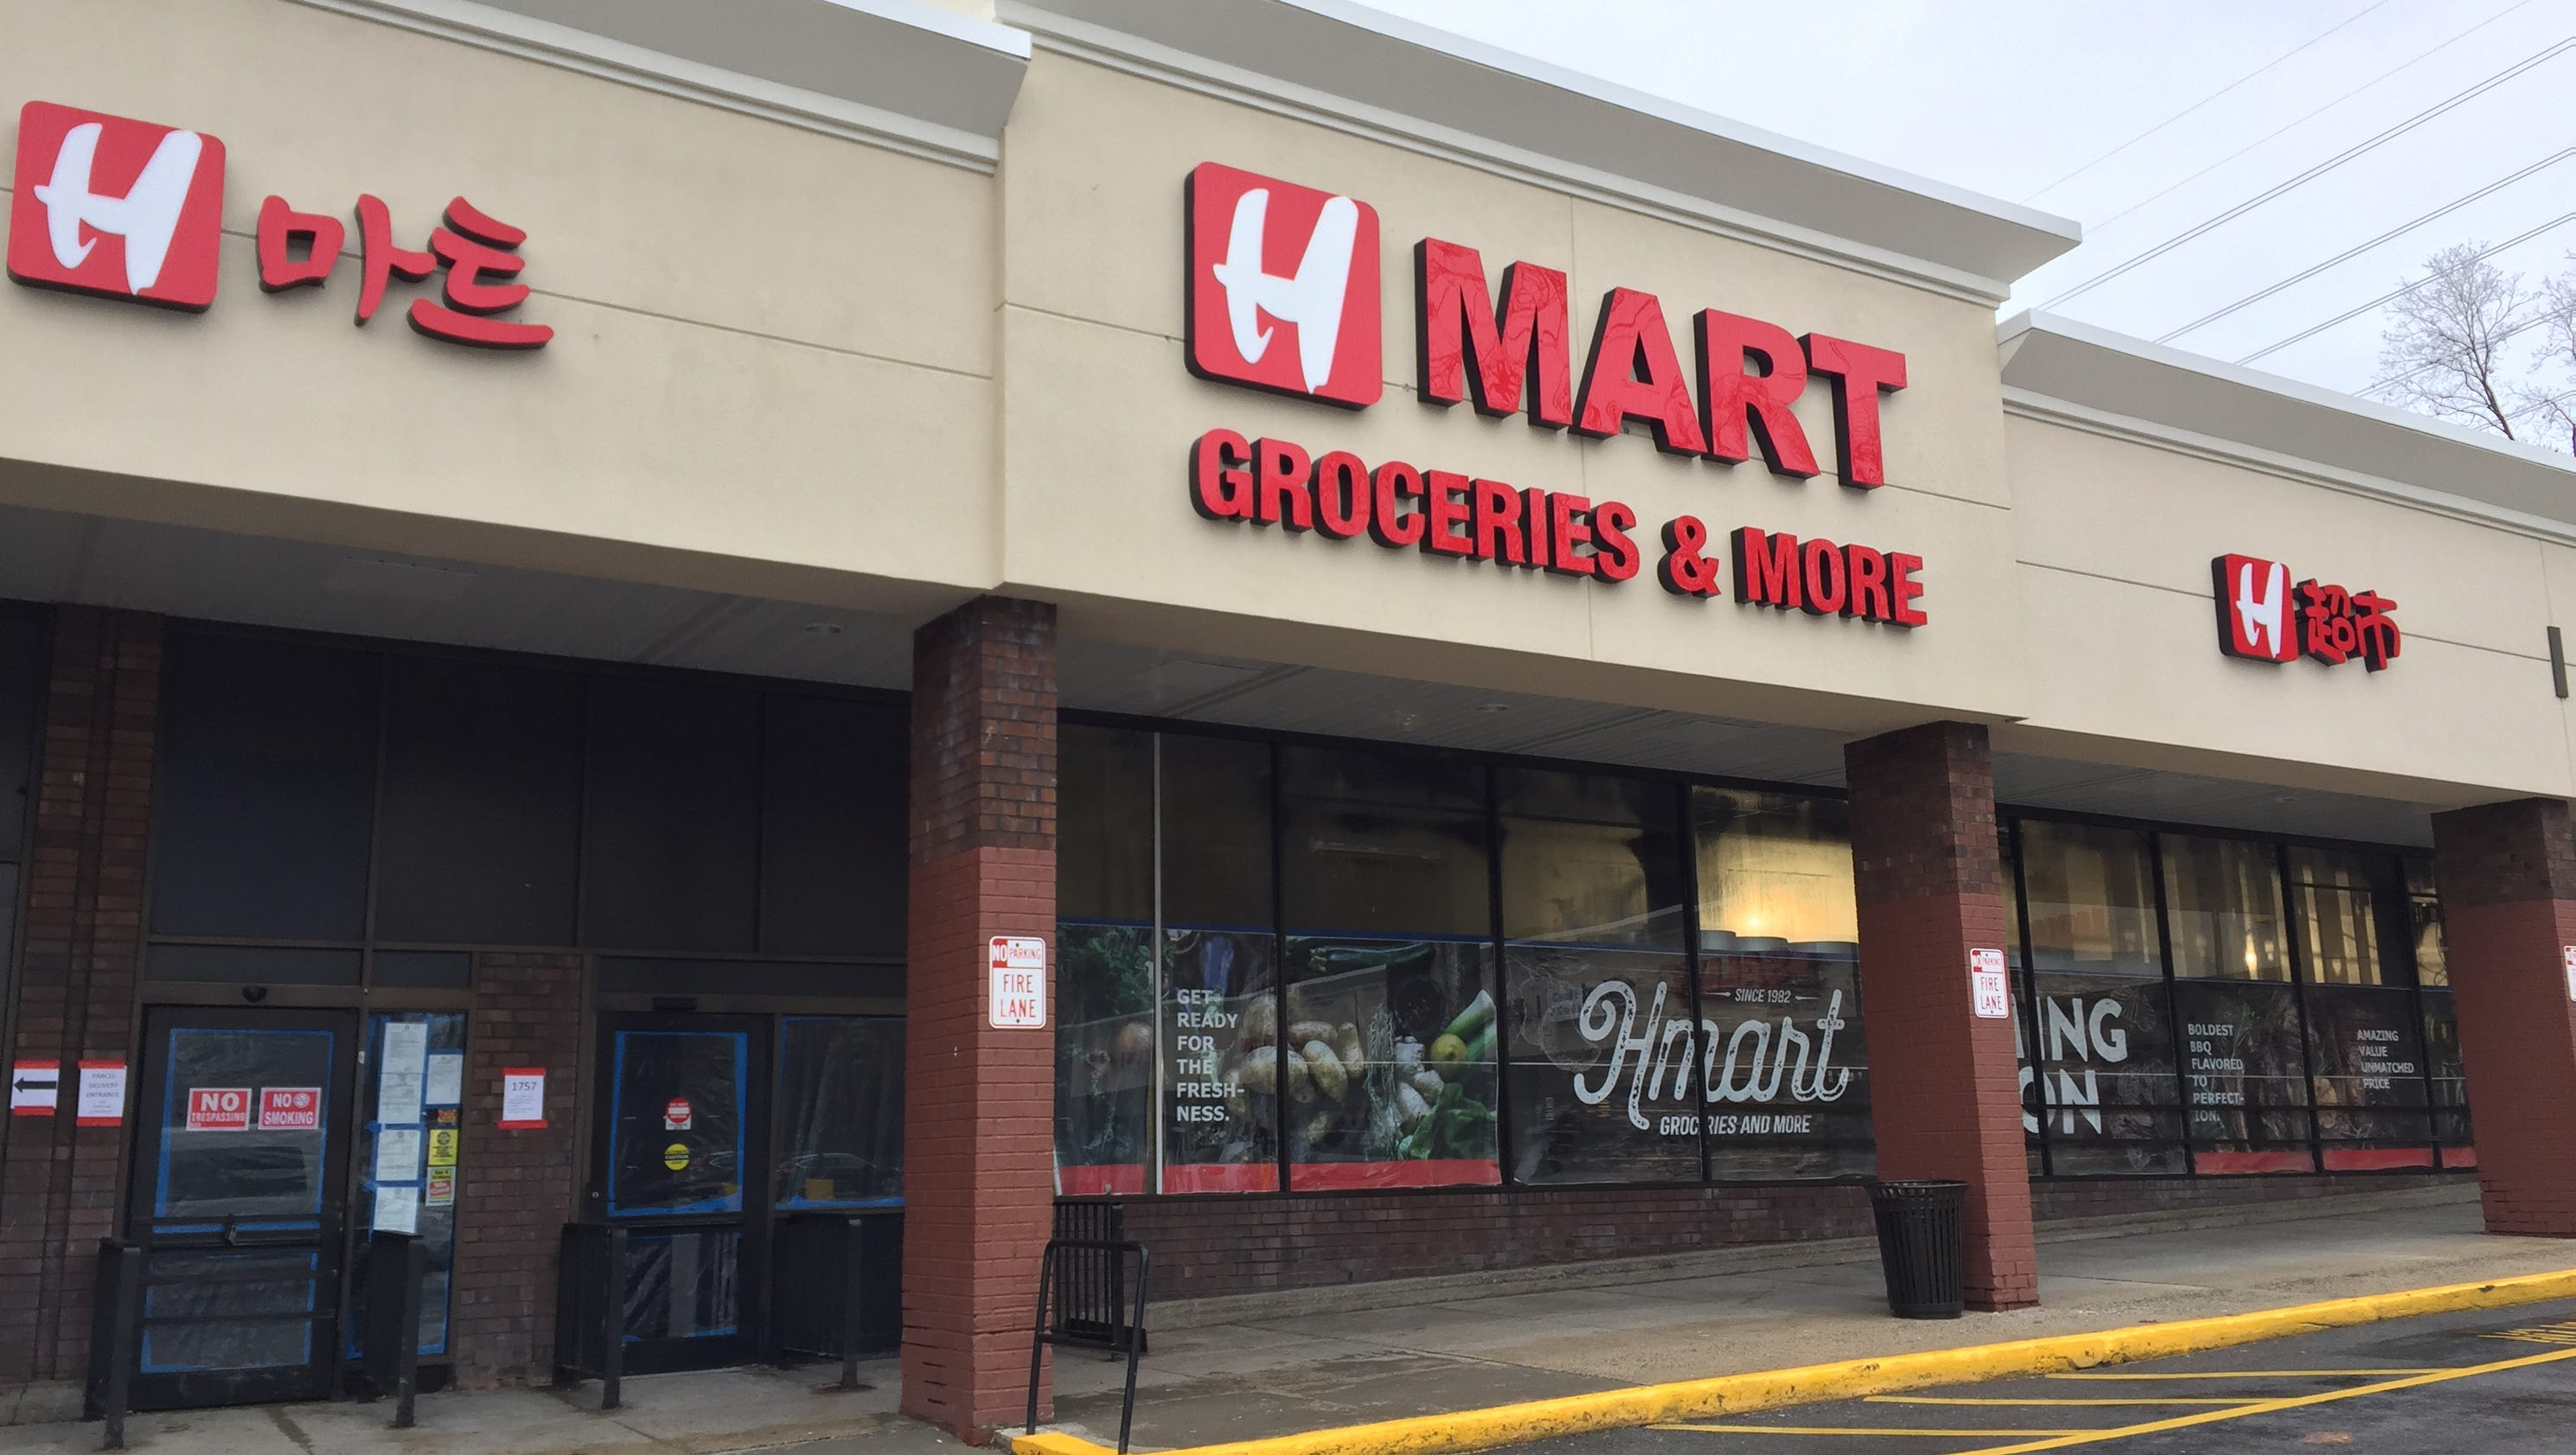 Hmart: Construction underway at Yonkers site